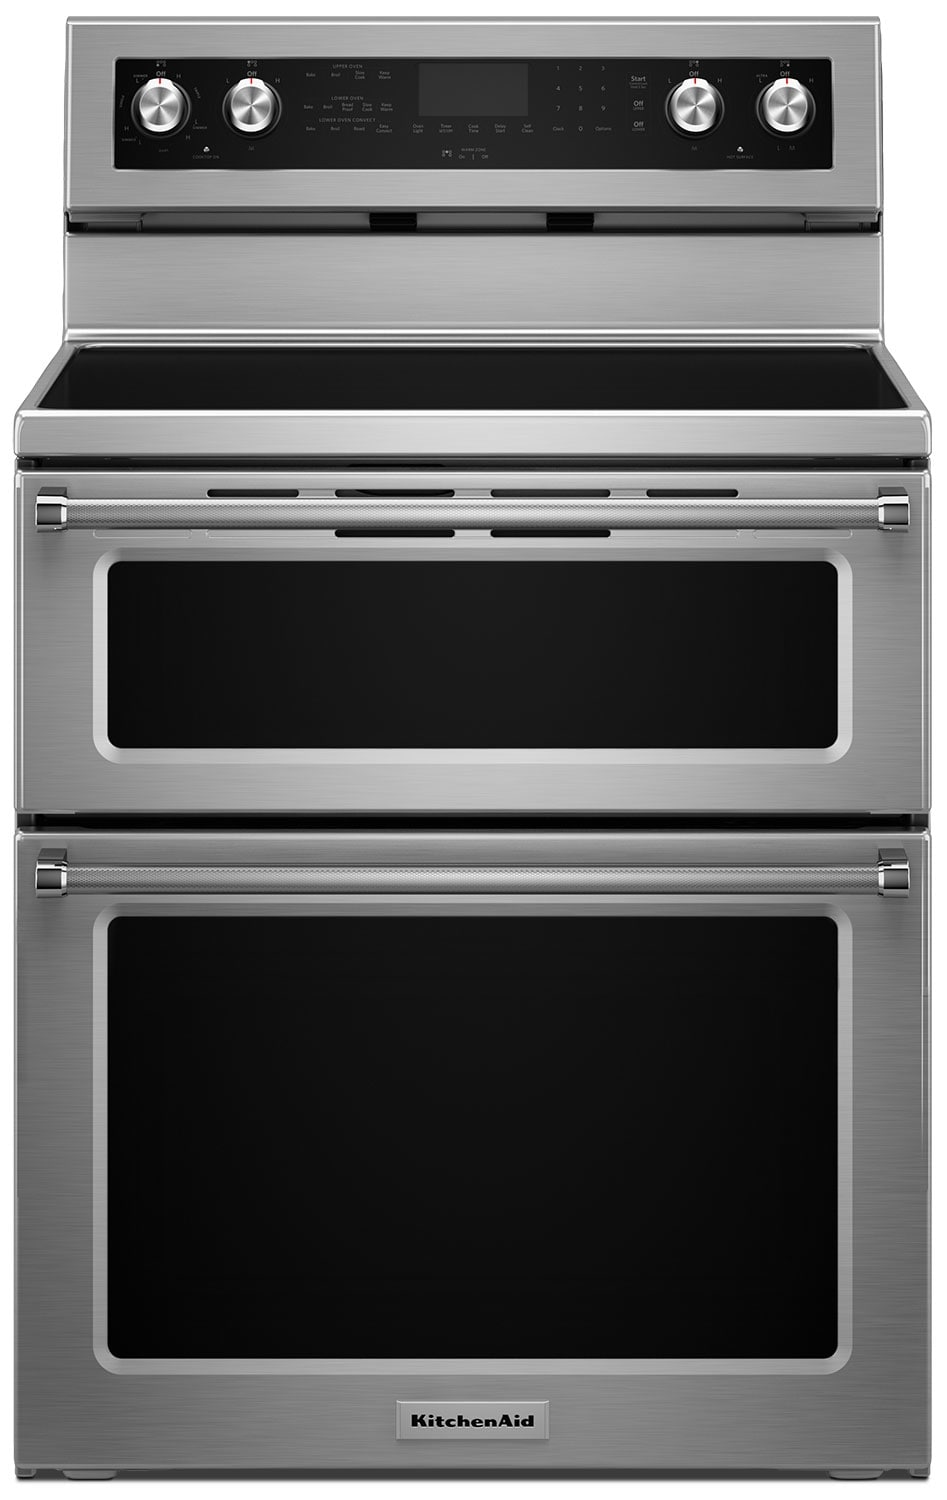 Cooking Products - KitchenAid Stainless Steel Freestanding Electric Double-Oven Range (6.7 Cu. Ft.) - YKFED500ESS